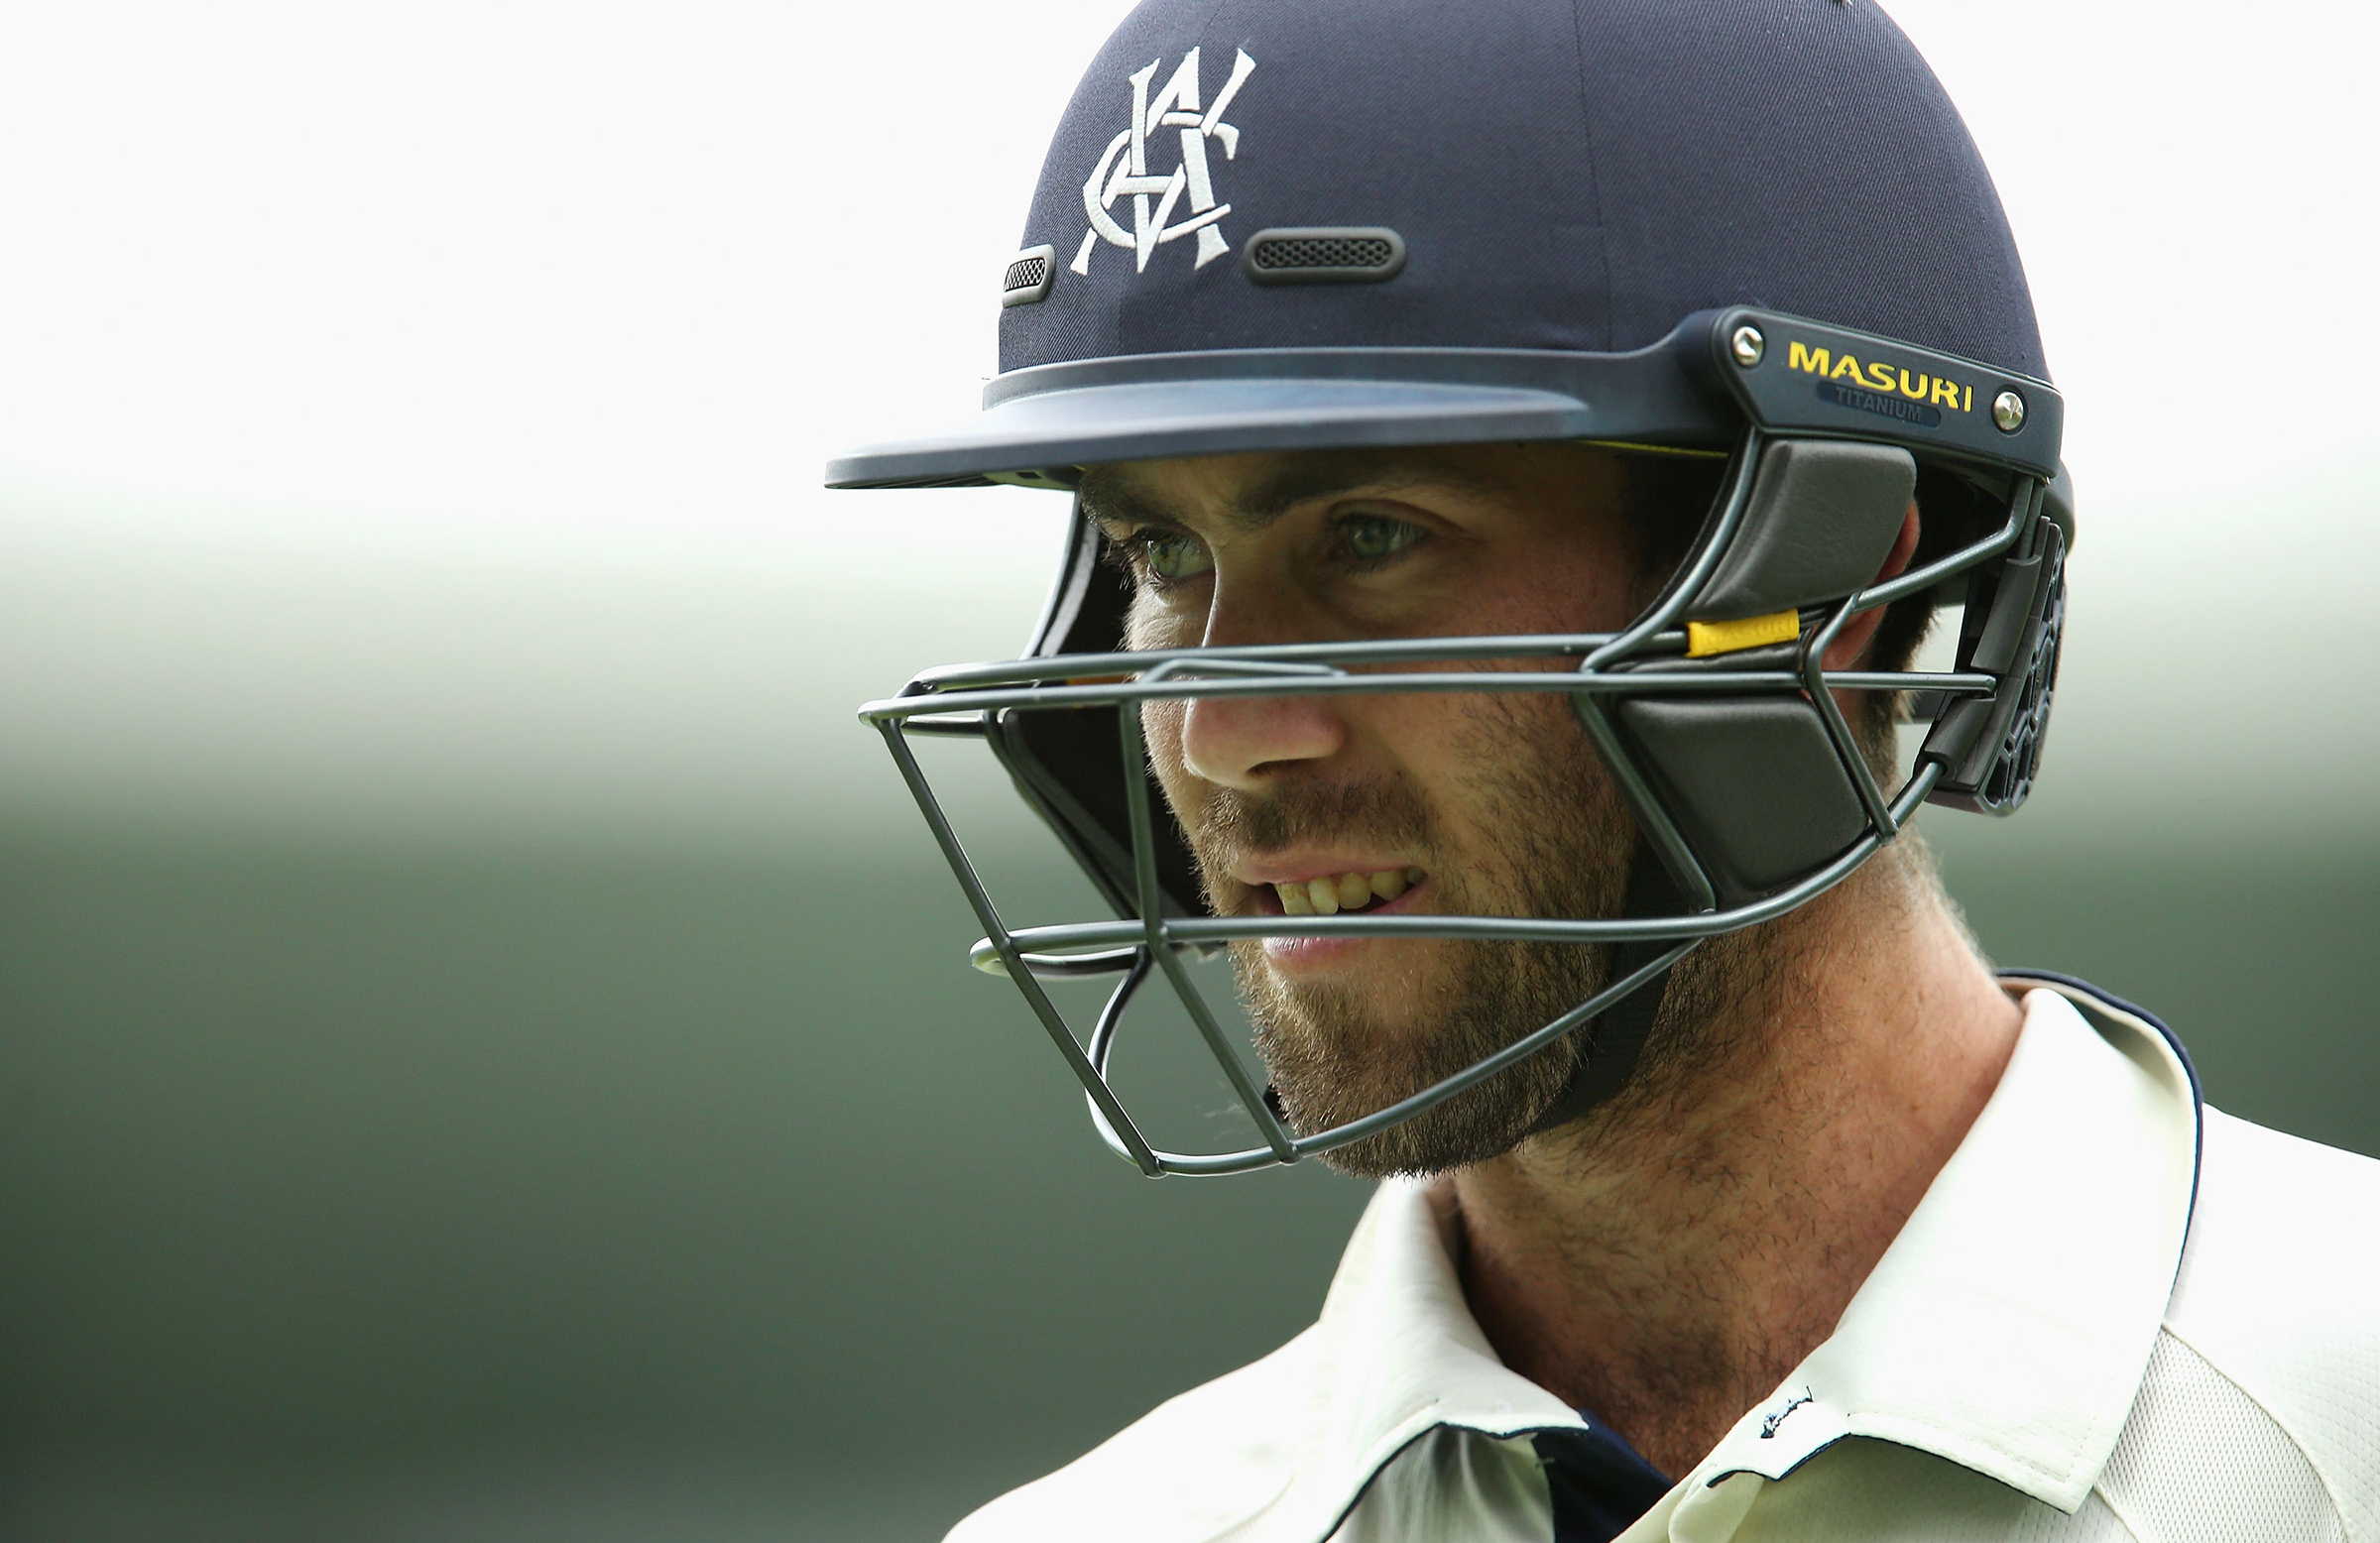 Australia's Glenn Maxwell fined for disrespectful teammate comments